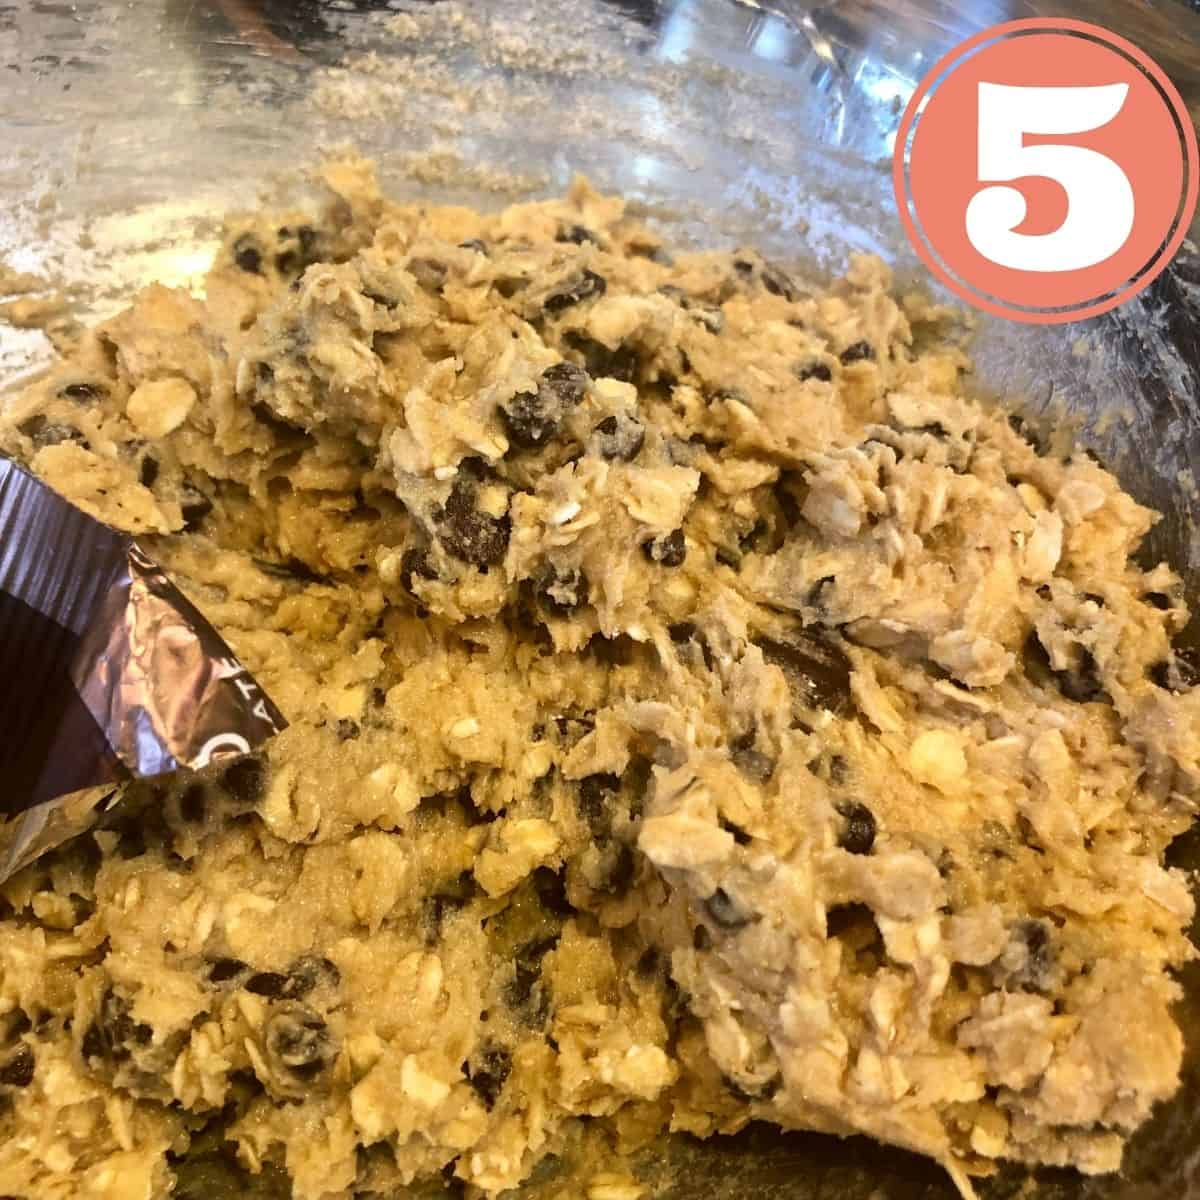 Adding chocolate chips to Oatmeal Cookie Batter in a stainless steel mixing bowl